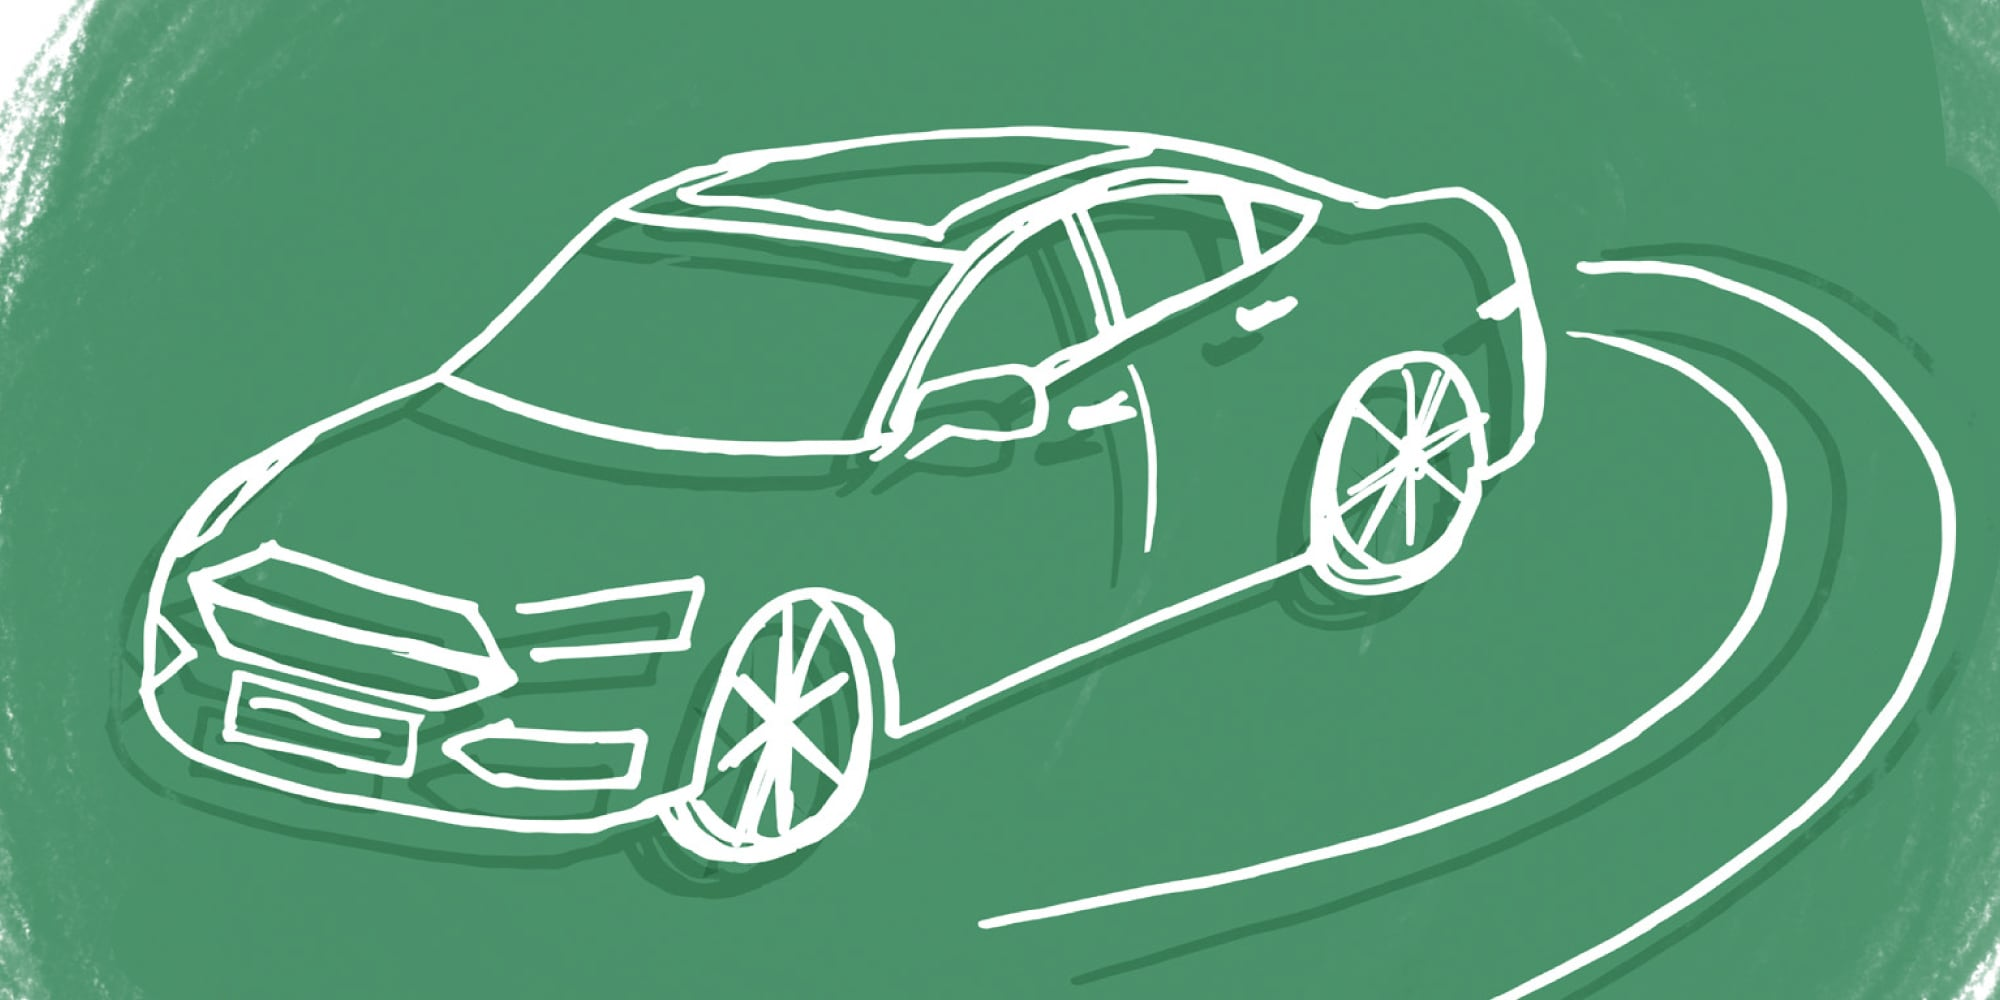 Line drawing of a car on green background